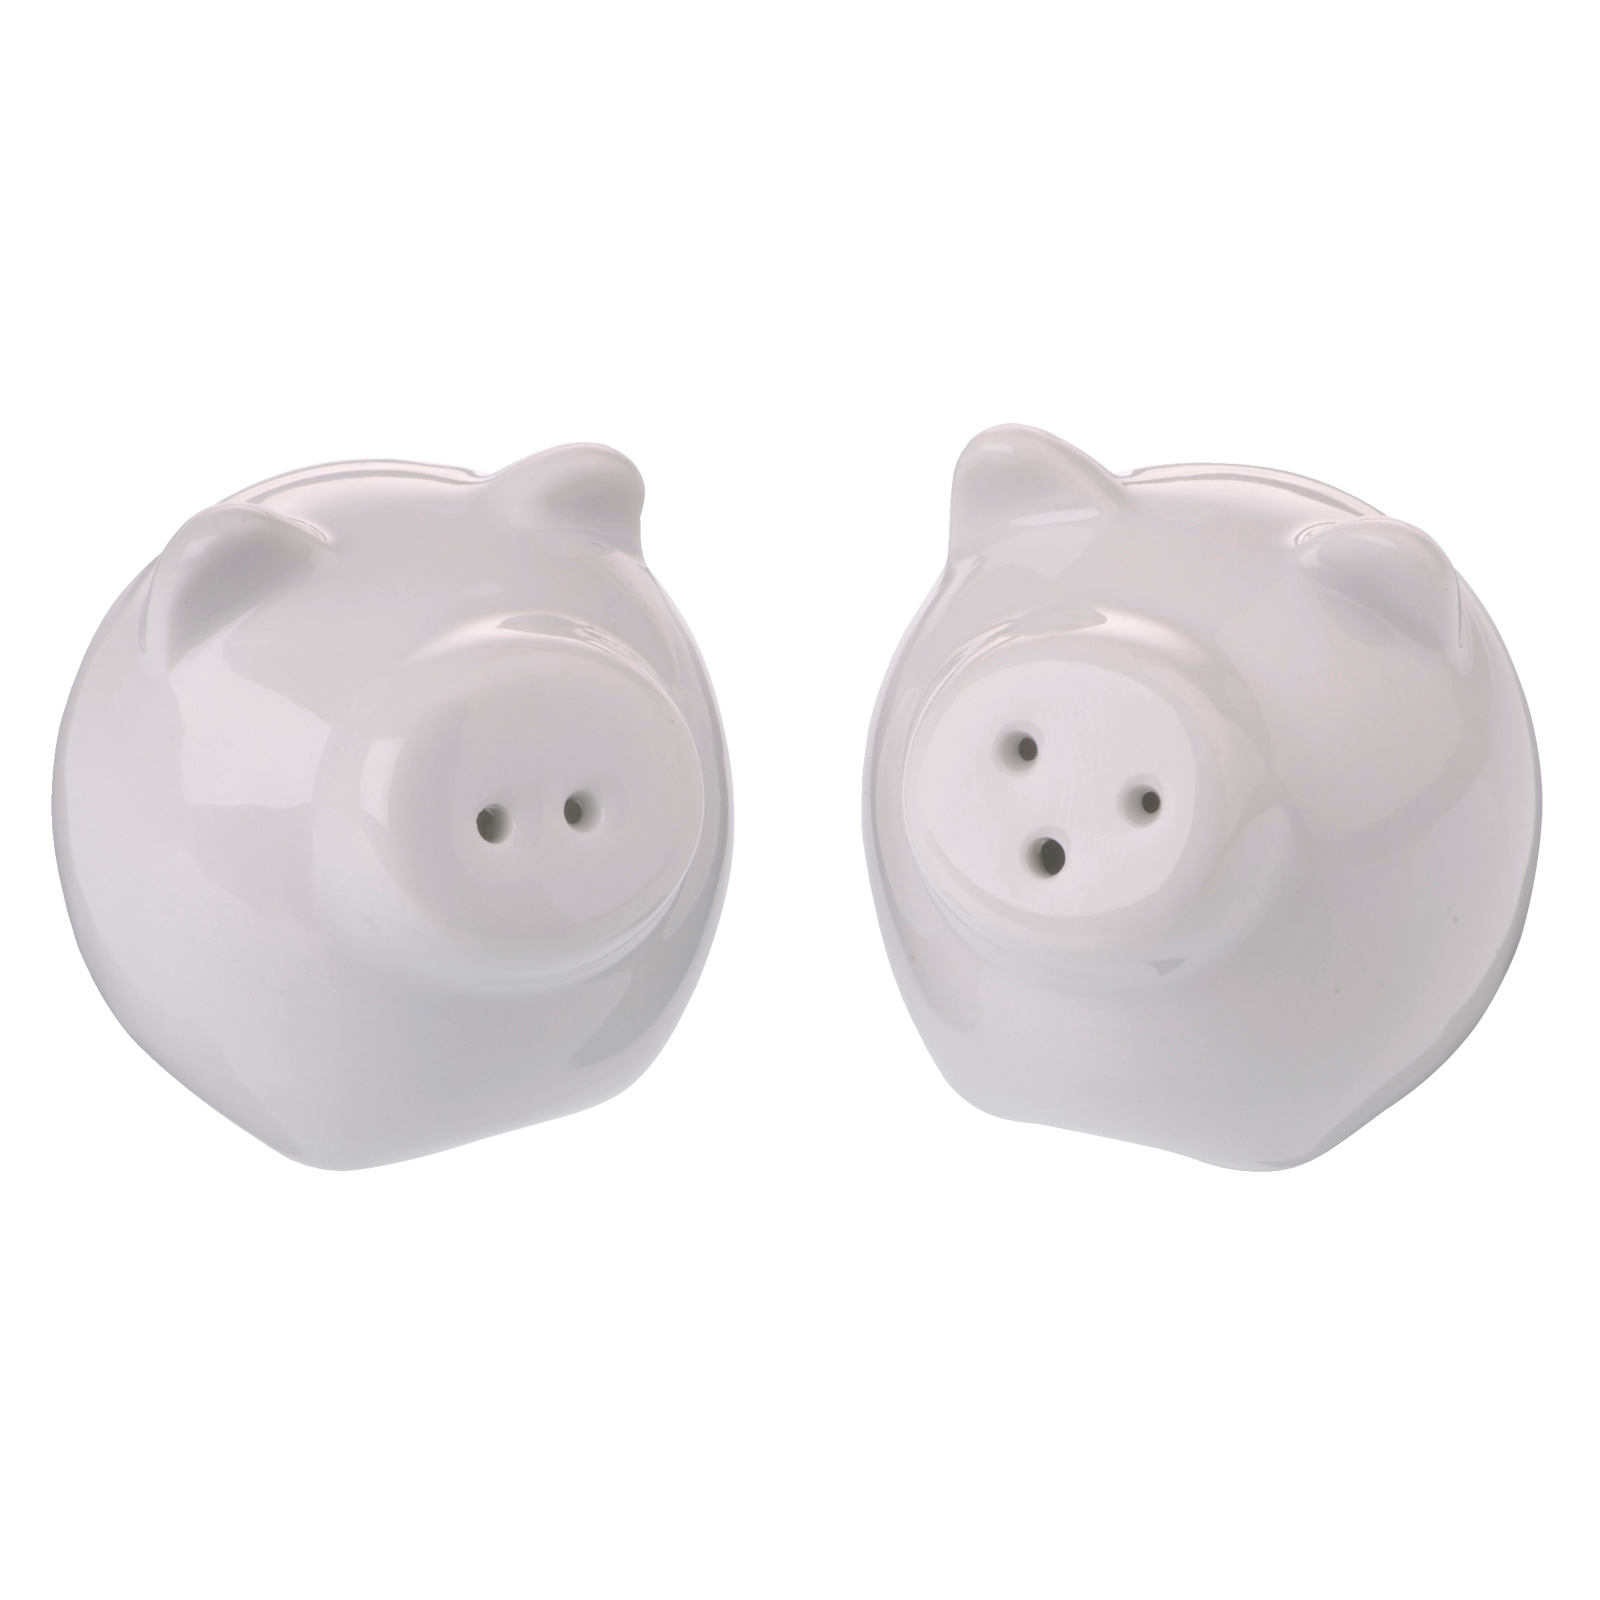 Mini Pig Salt & Pepper Shakers by BIA